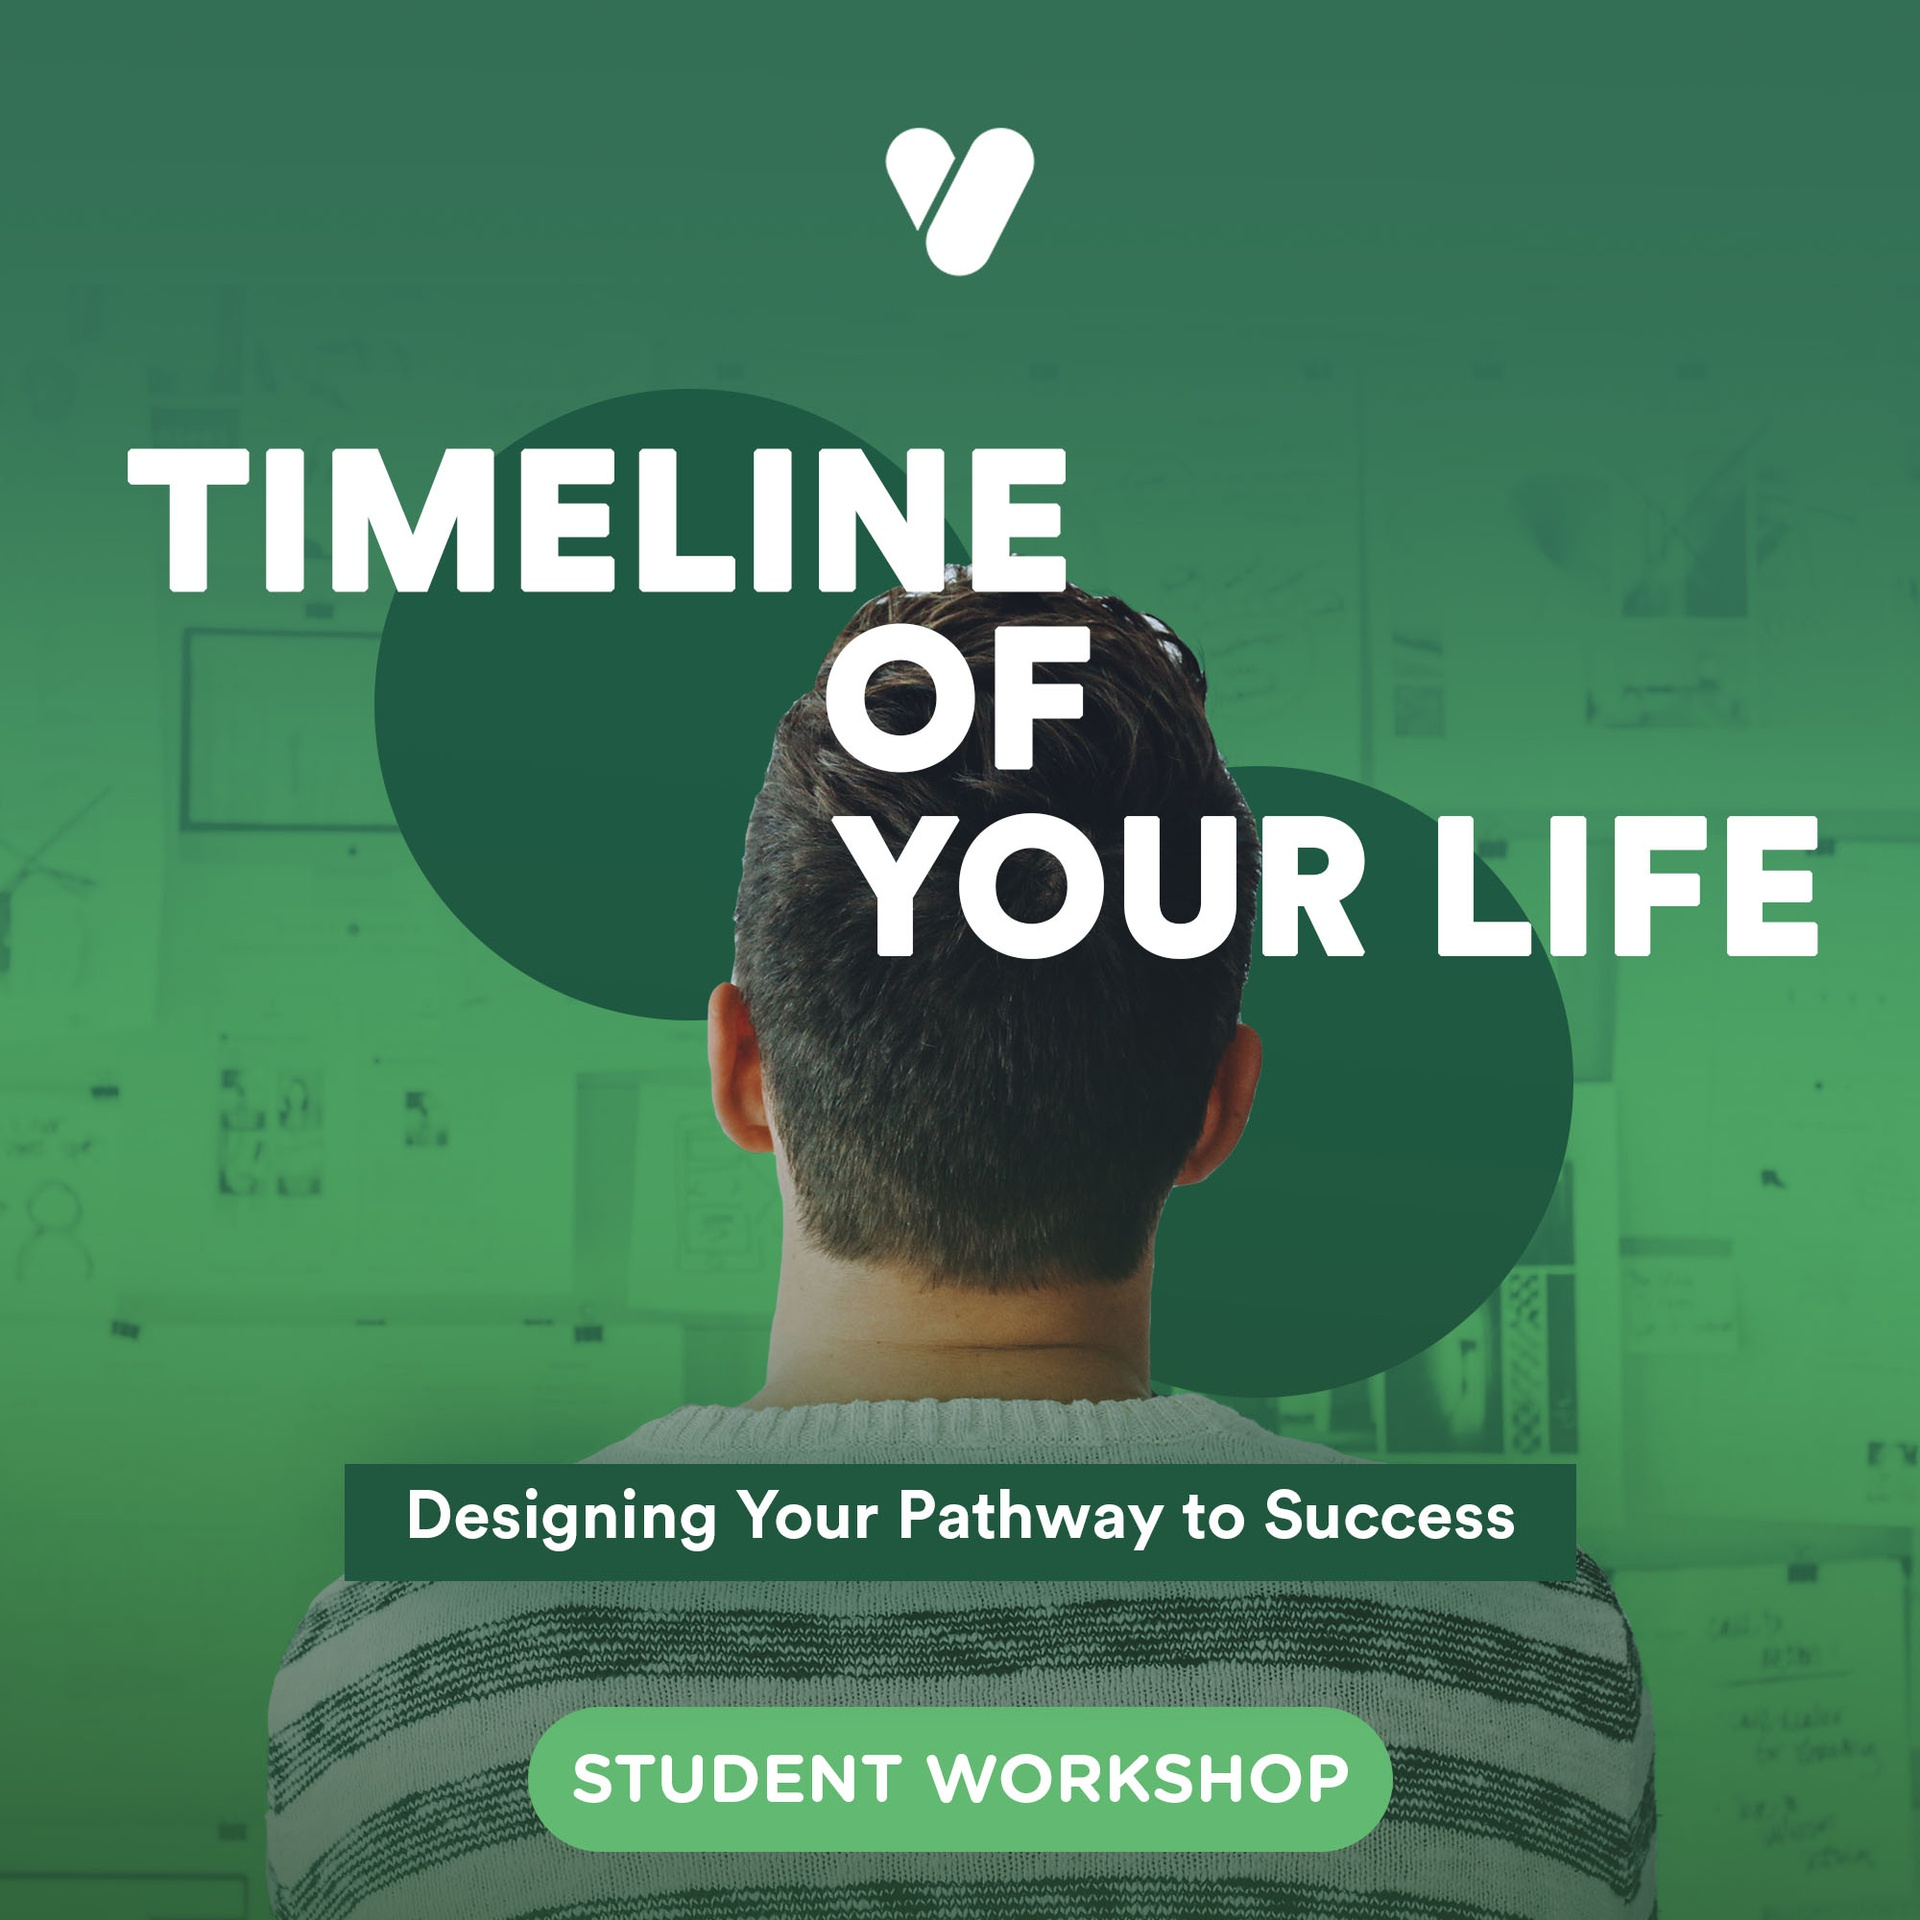 Timeline of Your Life: Designing Your Pathway to Success